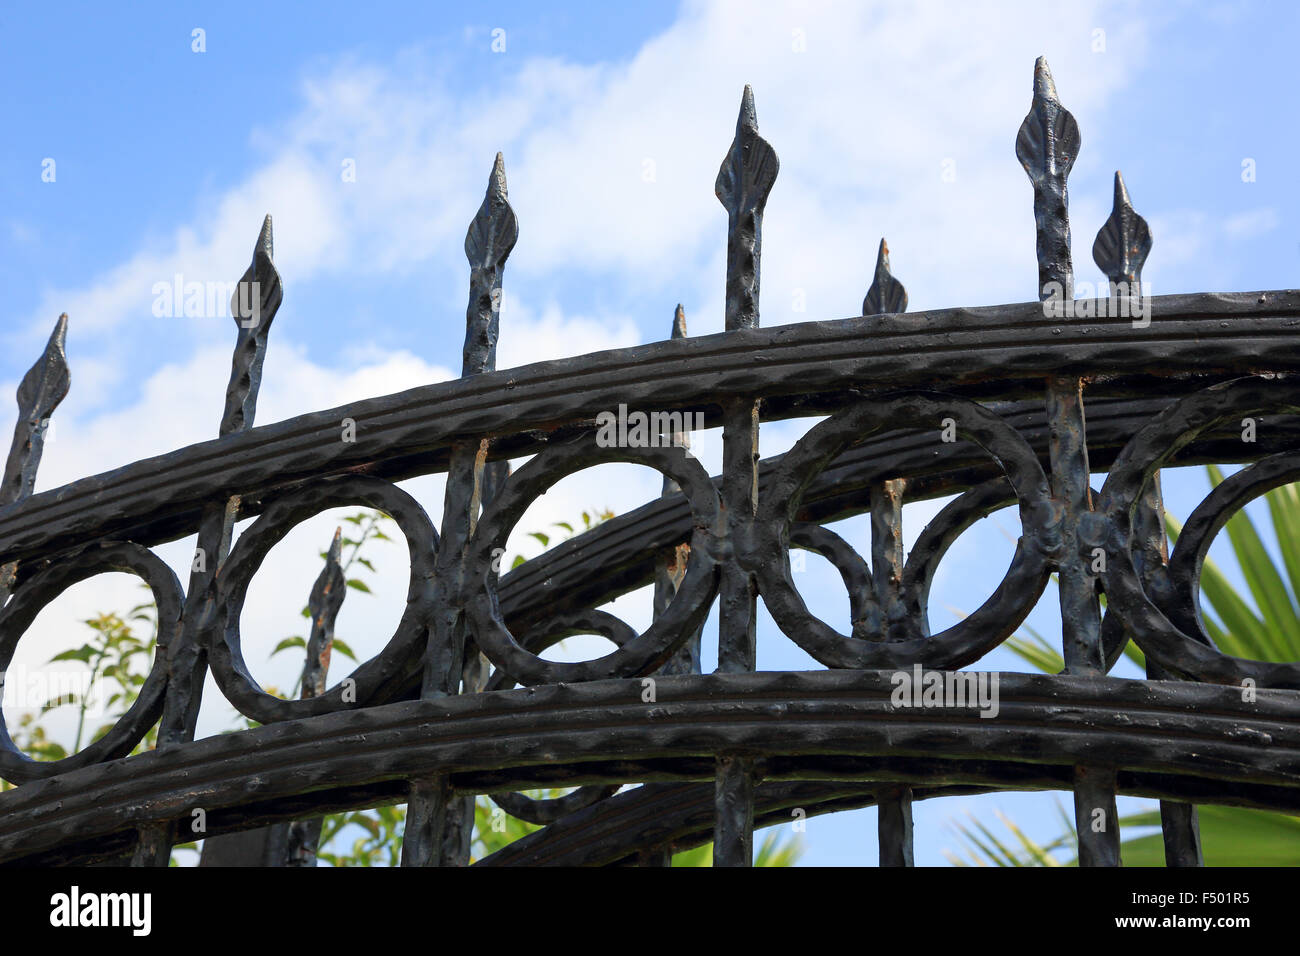 sturdy iron fence with sharp peaks - Stock Image